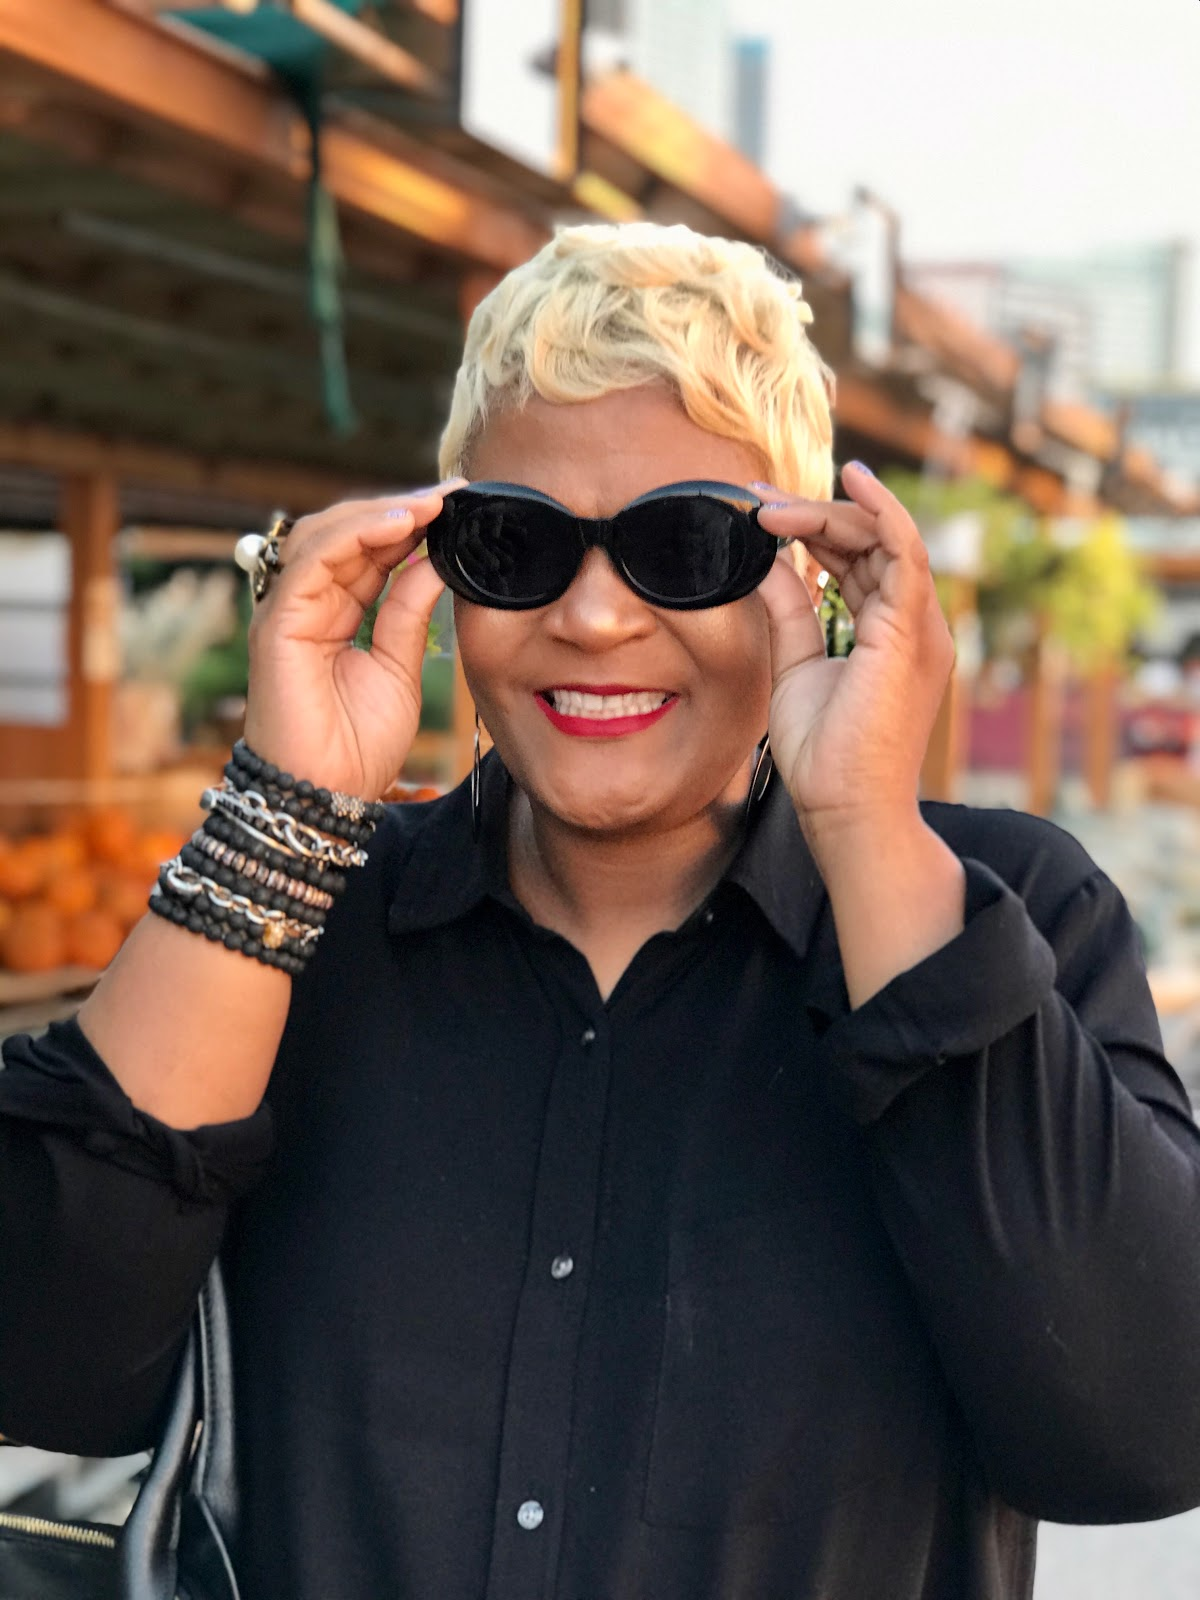 Tangie Bell is sharing how she wears shades to spice up her style